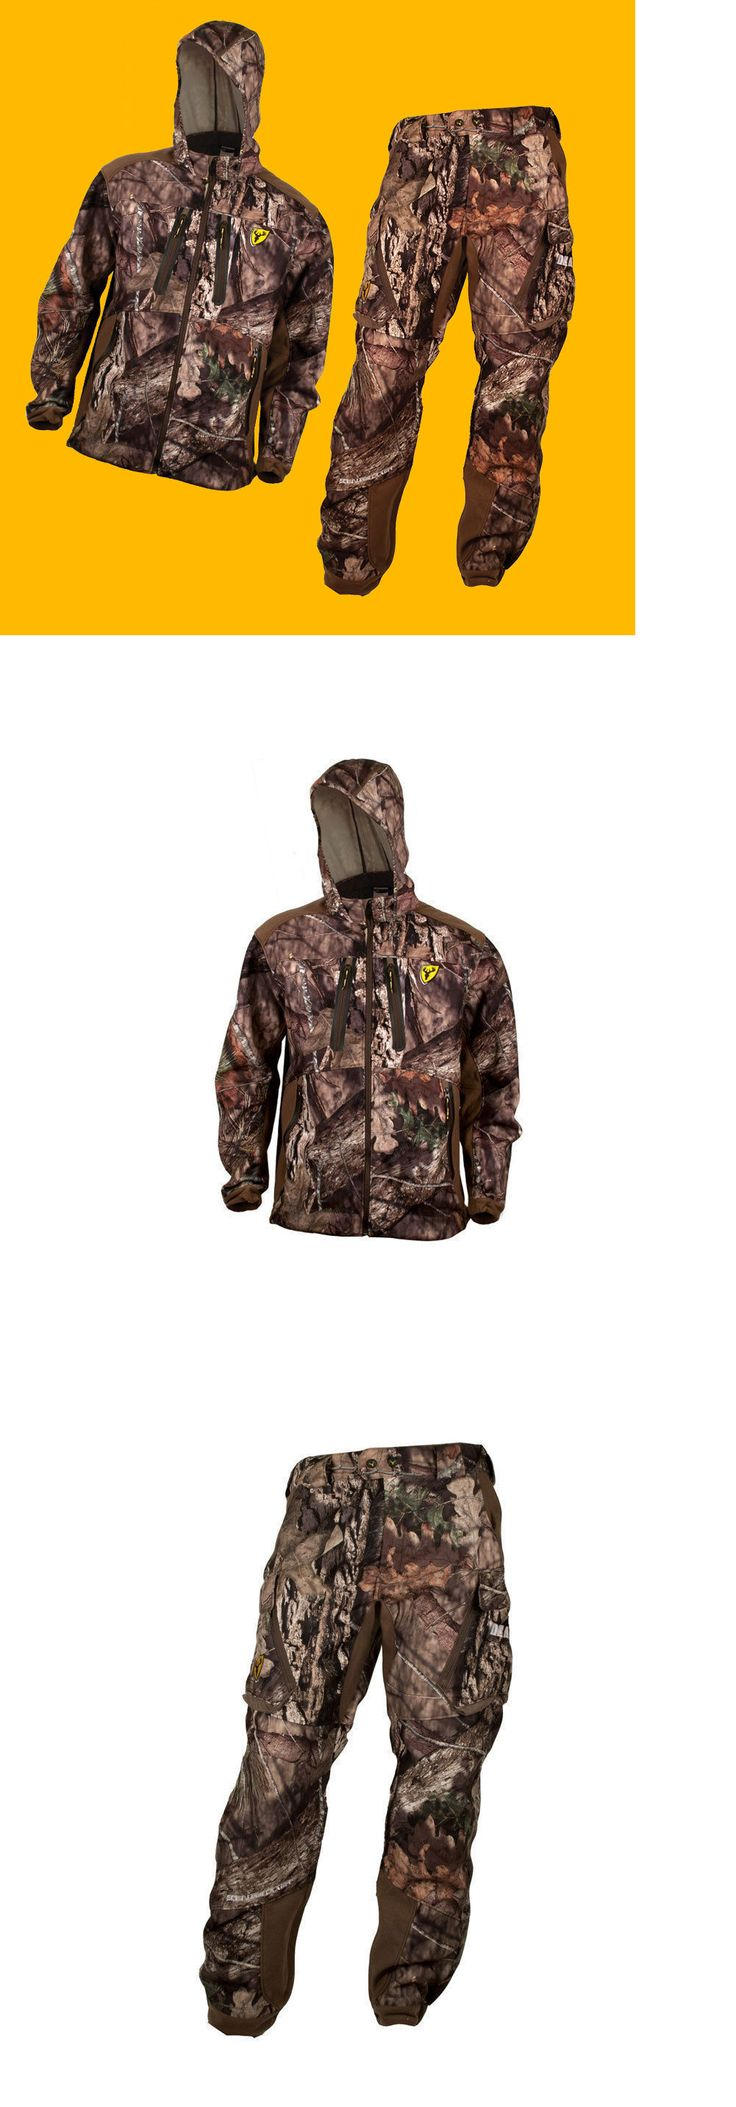 Jacket and Pant Sets 177872: Scentblocker Dead Quiet Jacket And Pants Suit Mossy Oak Country Camo - Mens Xl -> BUY IT NOW ONLY: $159.99 on eBay!